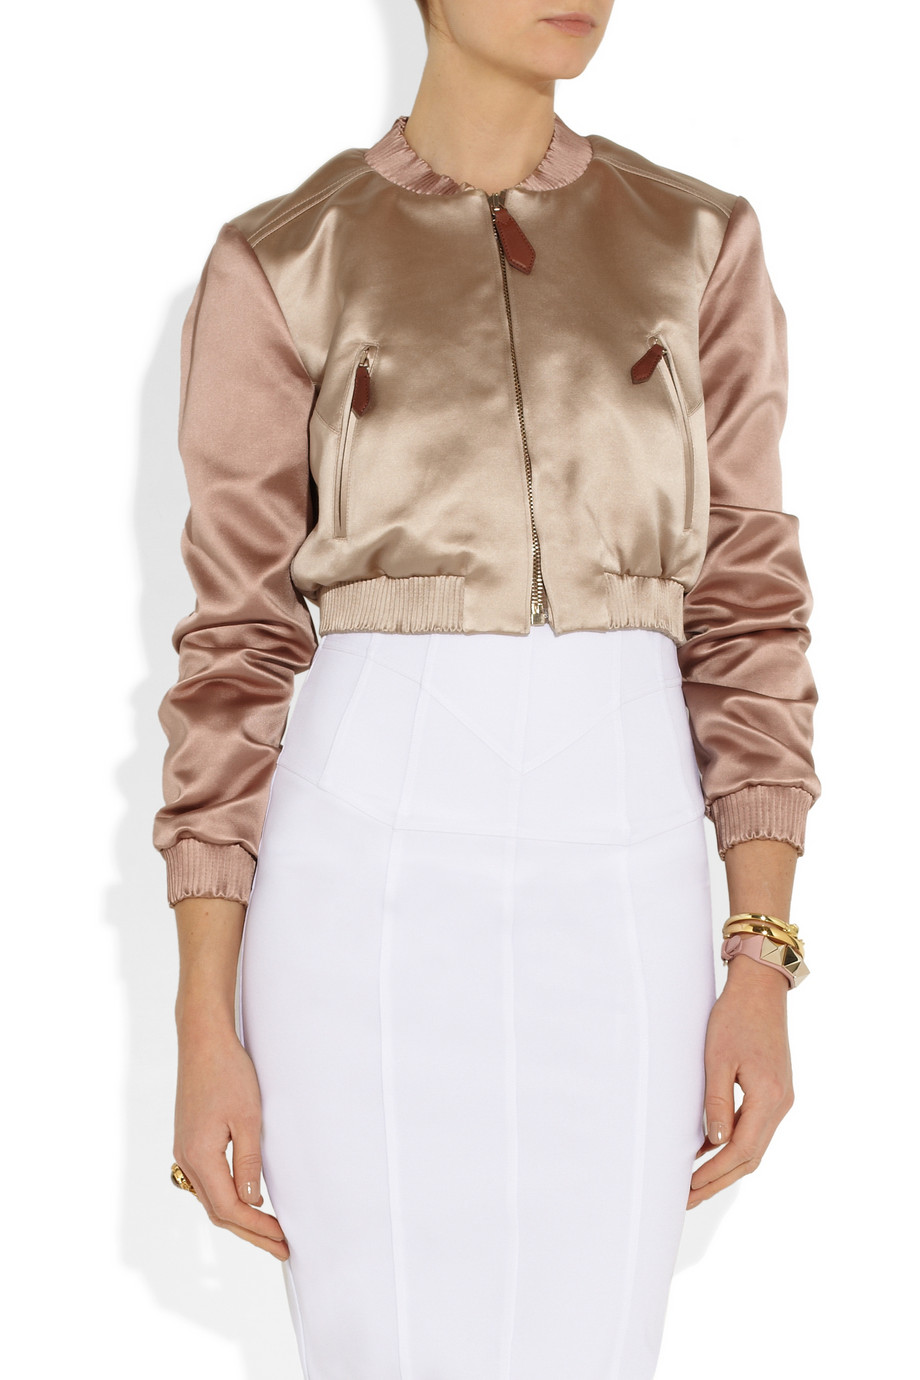 fbc714362f0e Lyst - Burberry Prorsum Cropped Satin Bomber Jacket in Pink